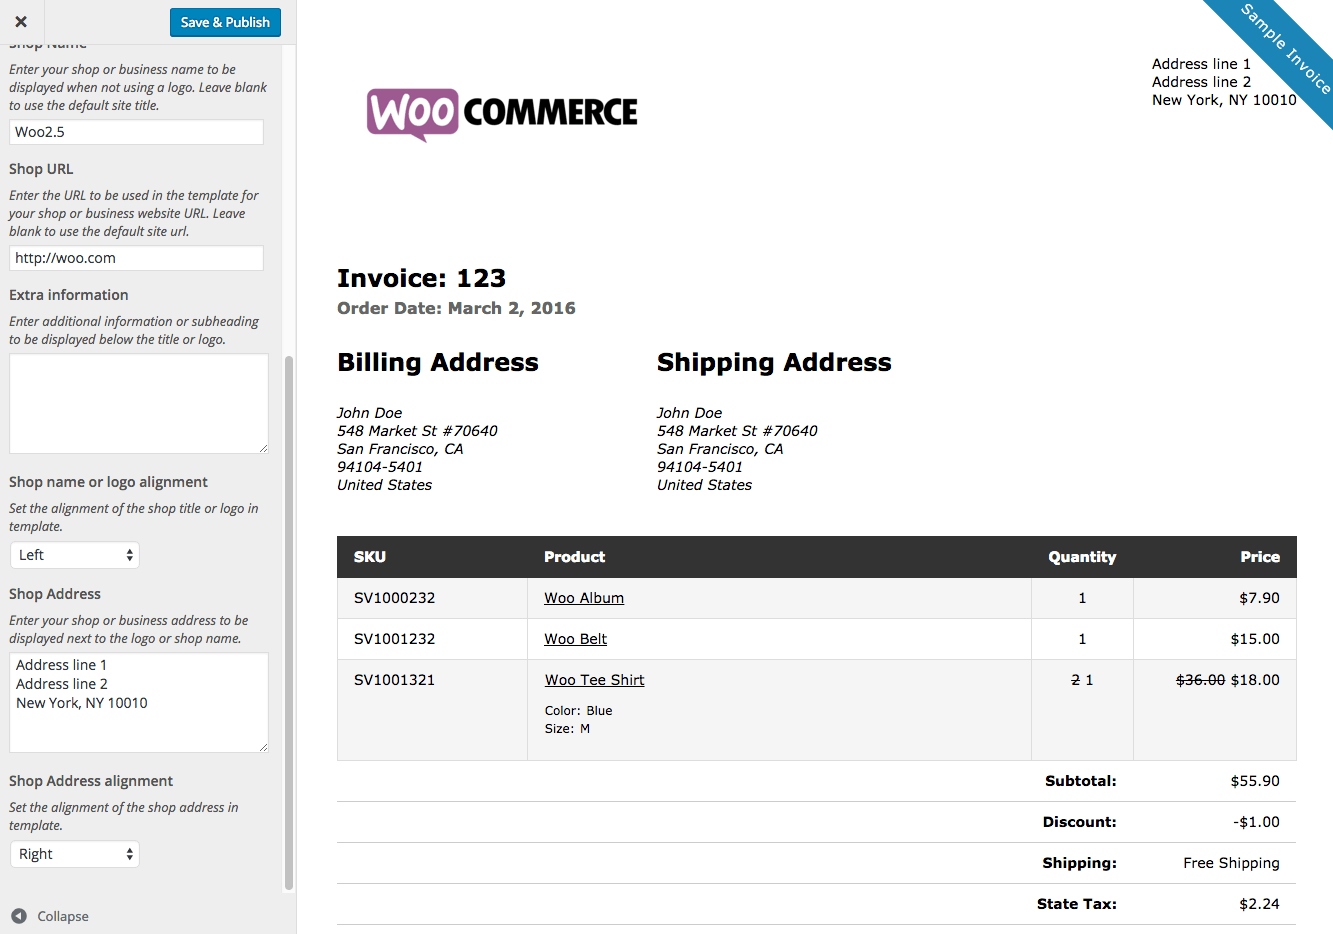 Aaaaeroincus  Remarkable Woocommerce Print Invoices Amp Packing Lists  Woocommerce Docs With Goodlooking Woocommerce Print Invoices  Packing Lists Customizer With Cute Auto Body Repair Invoice Also How To Send An Invoice In Paypal In Addition How To Find Dealer Invoice On New Cars And Consulting Invoice Template Word As Well As Blank Invoice Word Additionally Empty Invoice Template From Docswoocommercecom With Aaaaeroincus  Goodlooking Woocommerce Print Invoices Amp Packing Lists  Woocommerce Docs With Cute Woocommerce Print Invoices  Packing Lists Customizer And Remarkable Auto Body Repair Invoice Also How To Send An Invoice In Paypal In Addition How To Find Dealer Invoice On New Cars From Docswoocommercecom